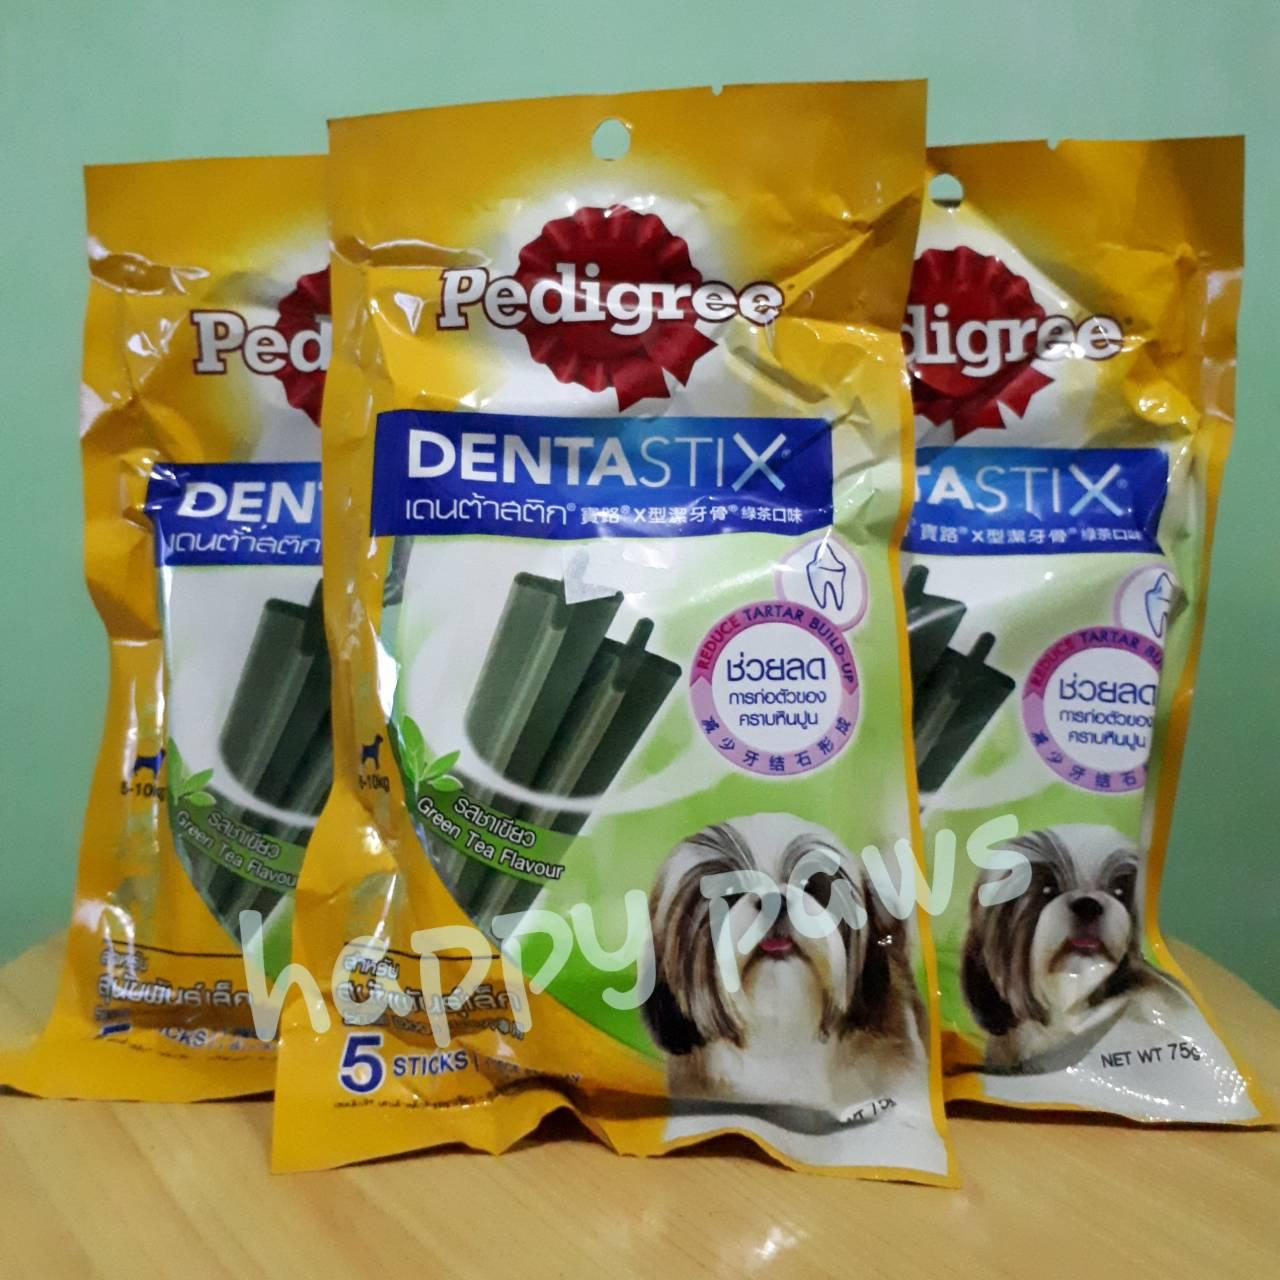 Pedigree Denta Stix Green Tea 5s By Happy Paws Complete Pet Care.